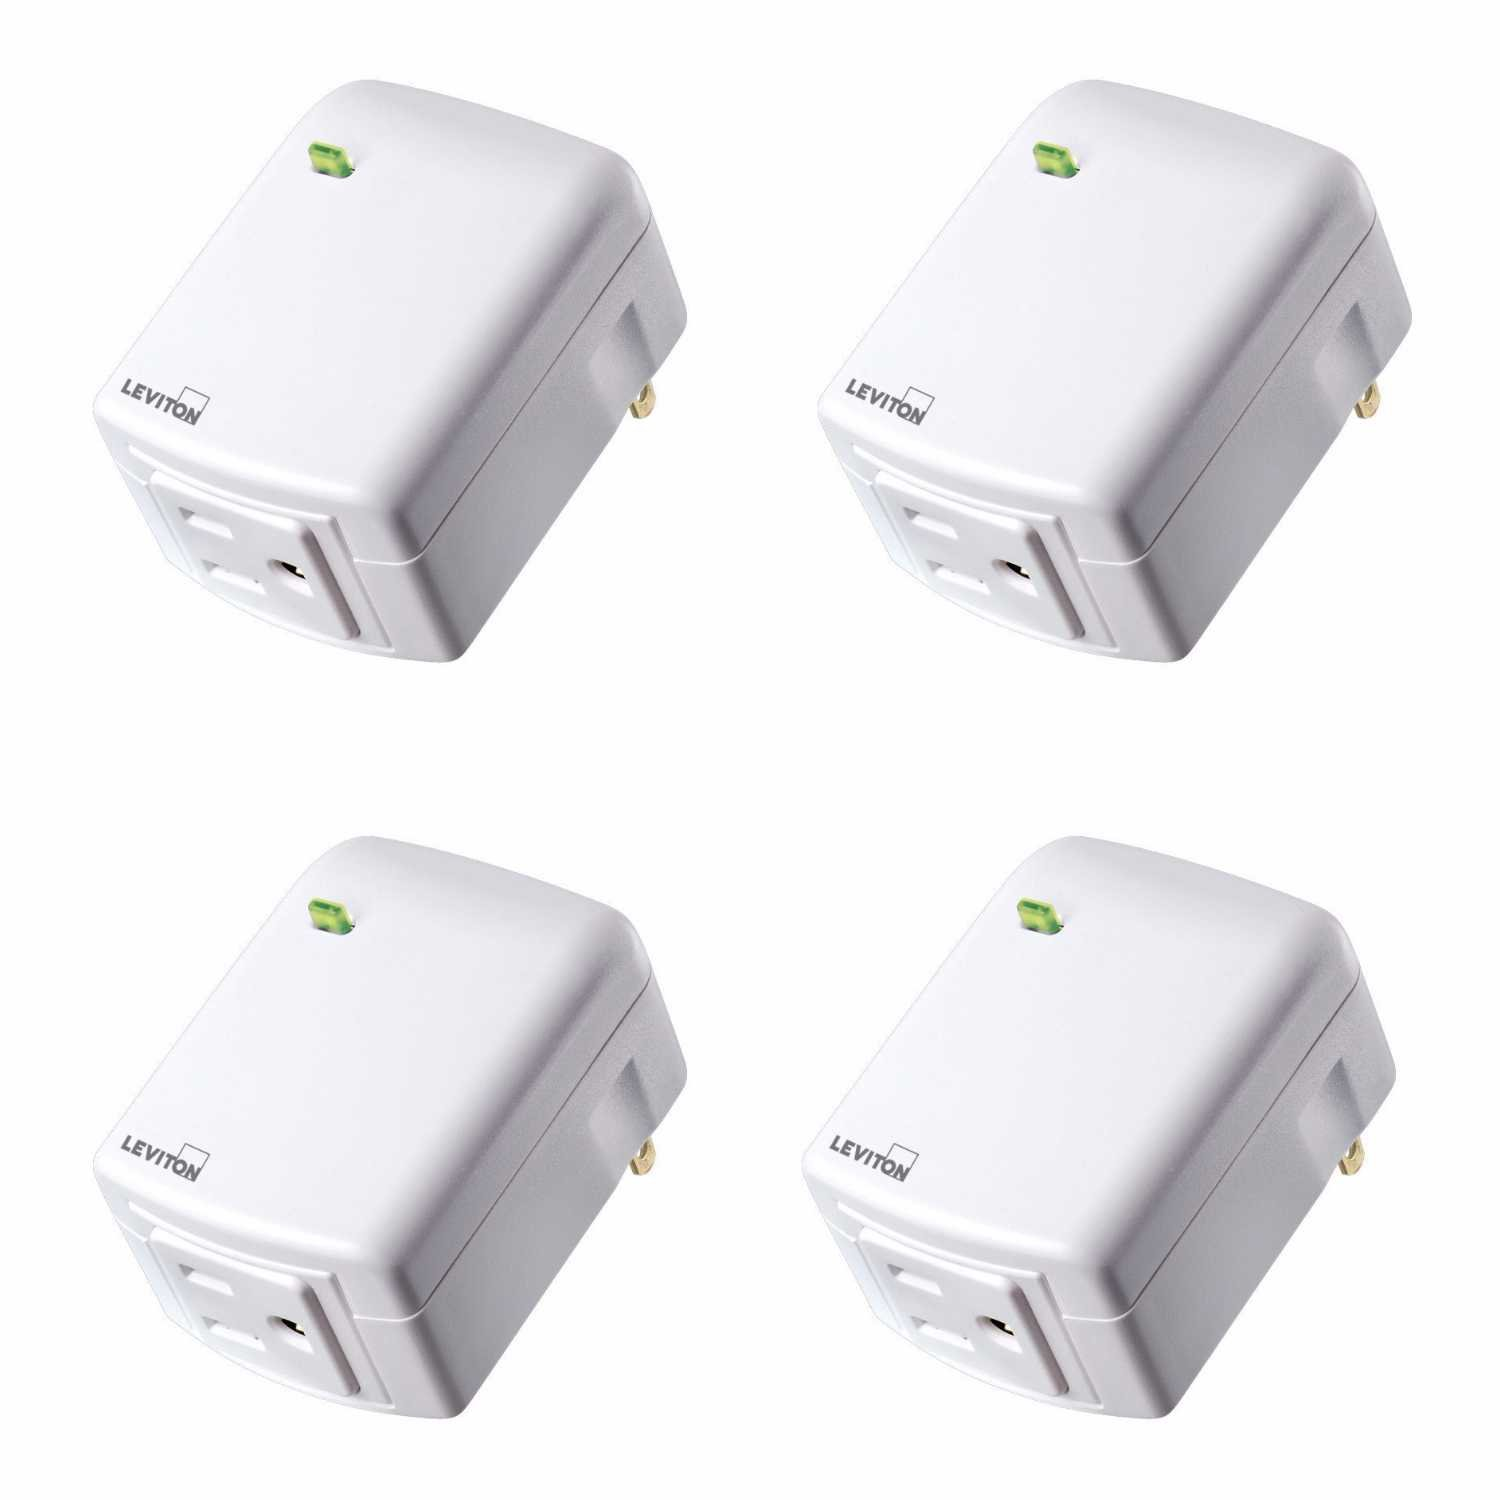 Leviton DZPA1-2BW Decora Smart Plug-in Outlet with Z-Wave Plus Technology (4 Pack) by Leviton